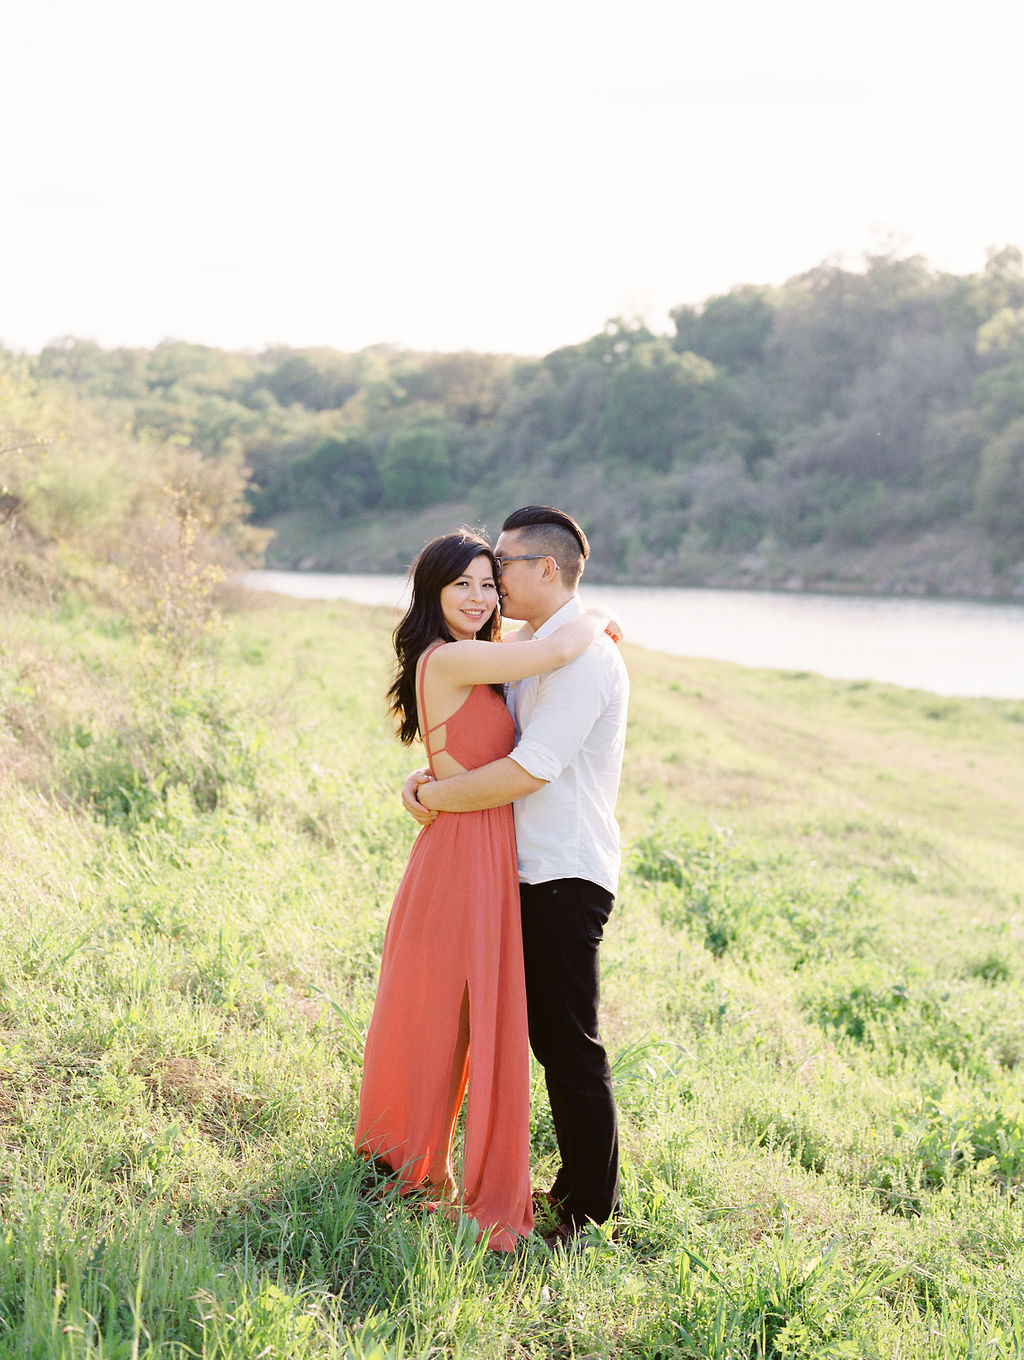 Austin-Film-Wedding-Photographer-Engagement-Session-Fun-adventure-outdoor-fine-art-13.jpg